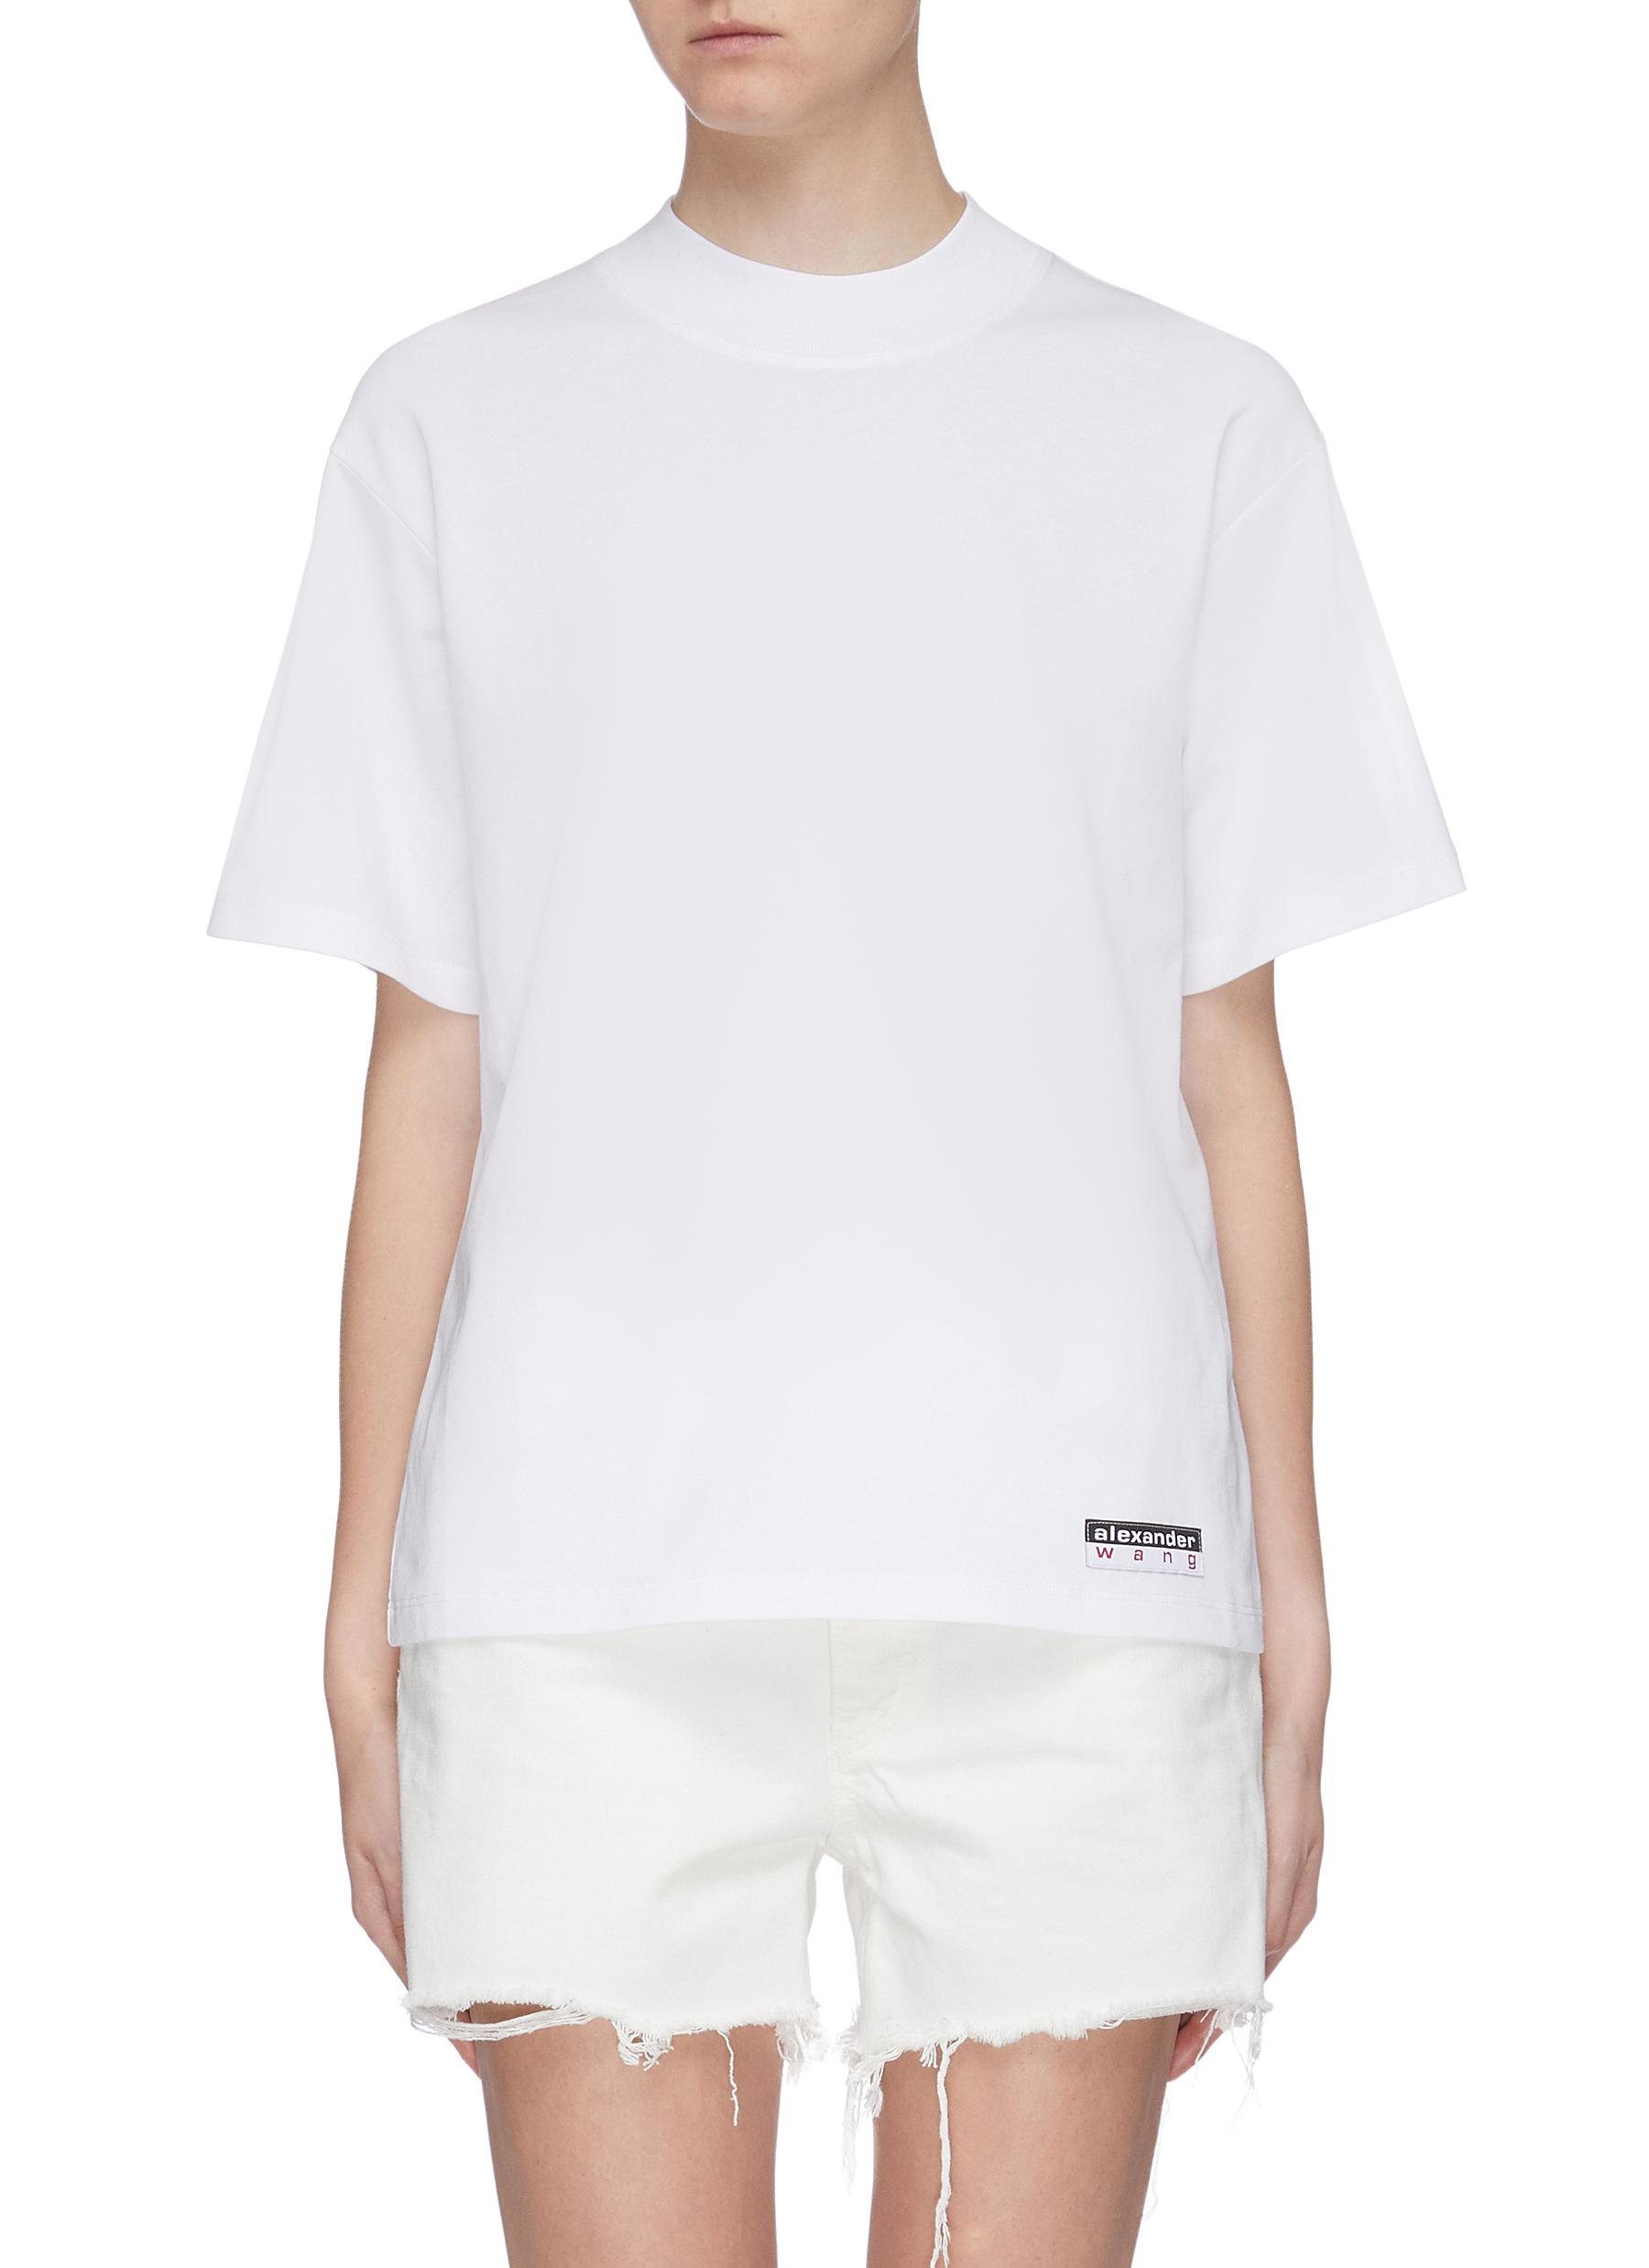 Wash + Go logo tag oversized T-shirt by Alexanderwang.T